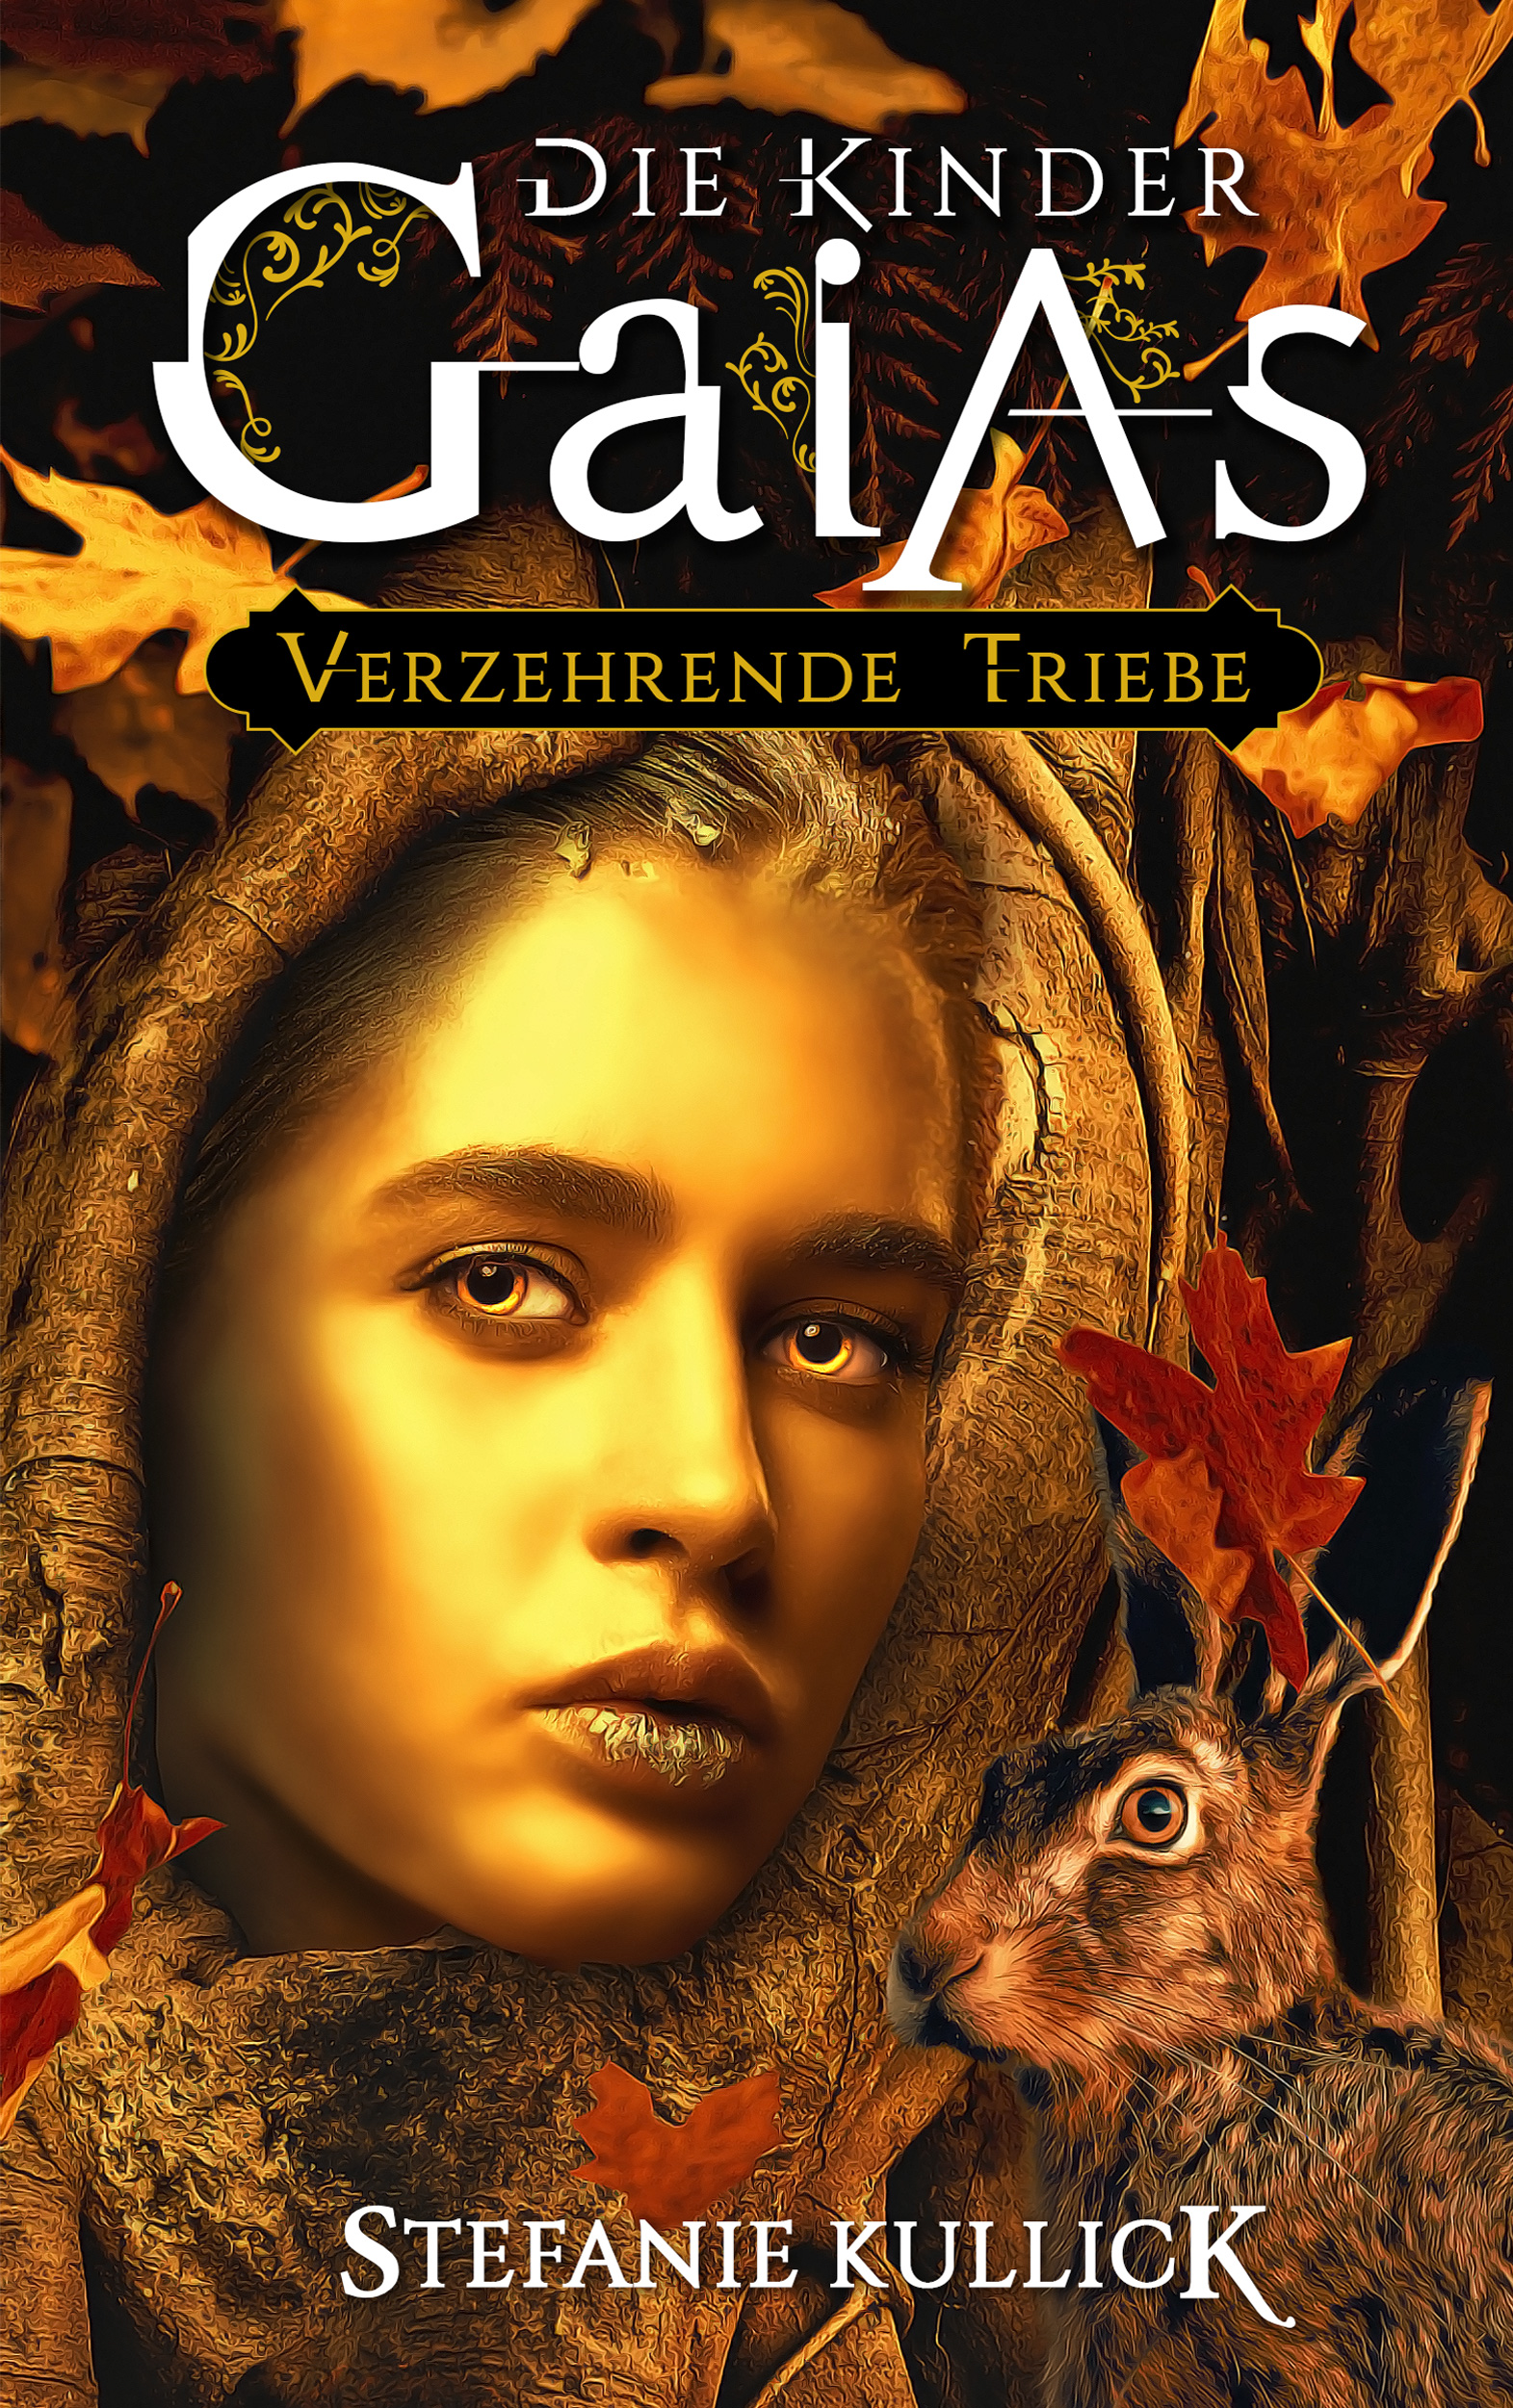 Die-Kinder-Gaias-verzehrende-tribe-EBOOK-WEB